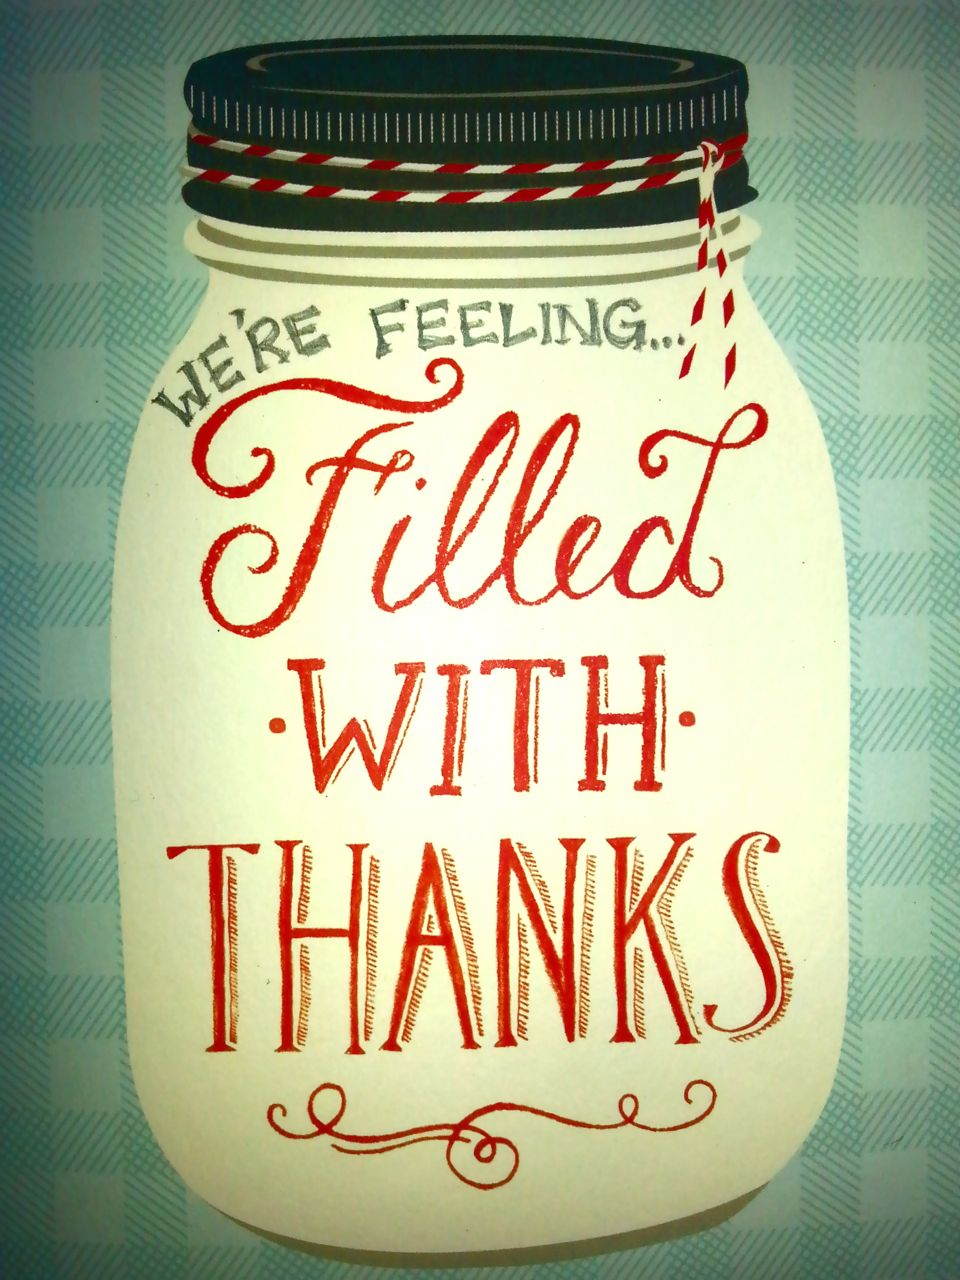 Filled with Thanks